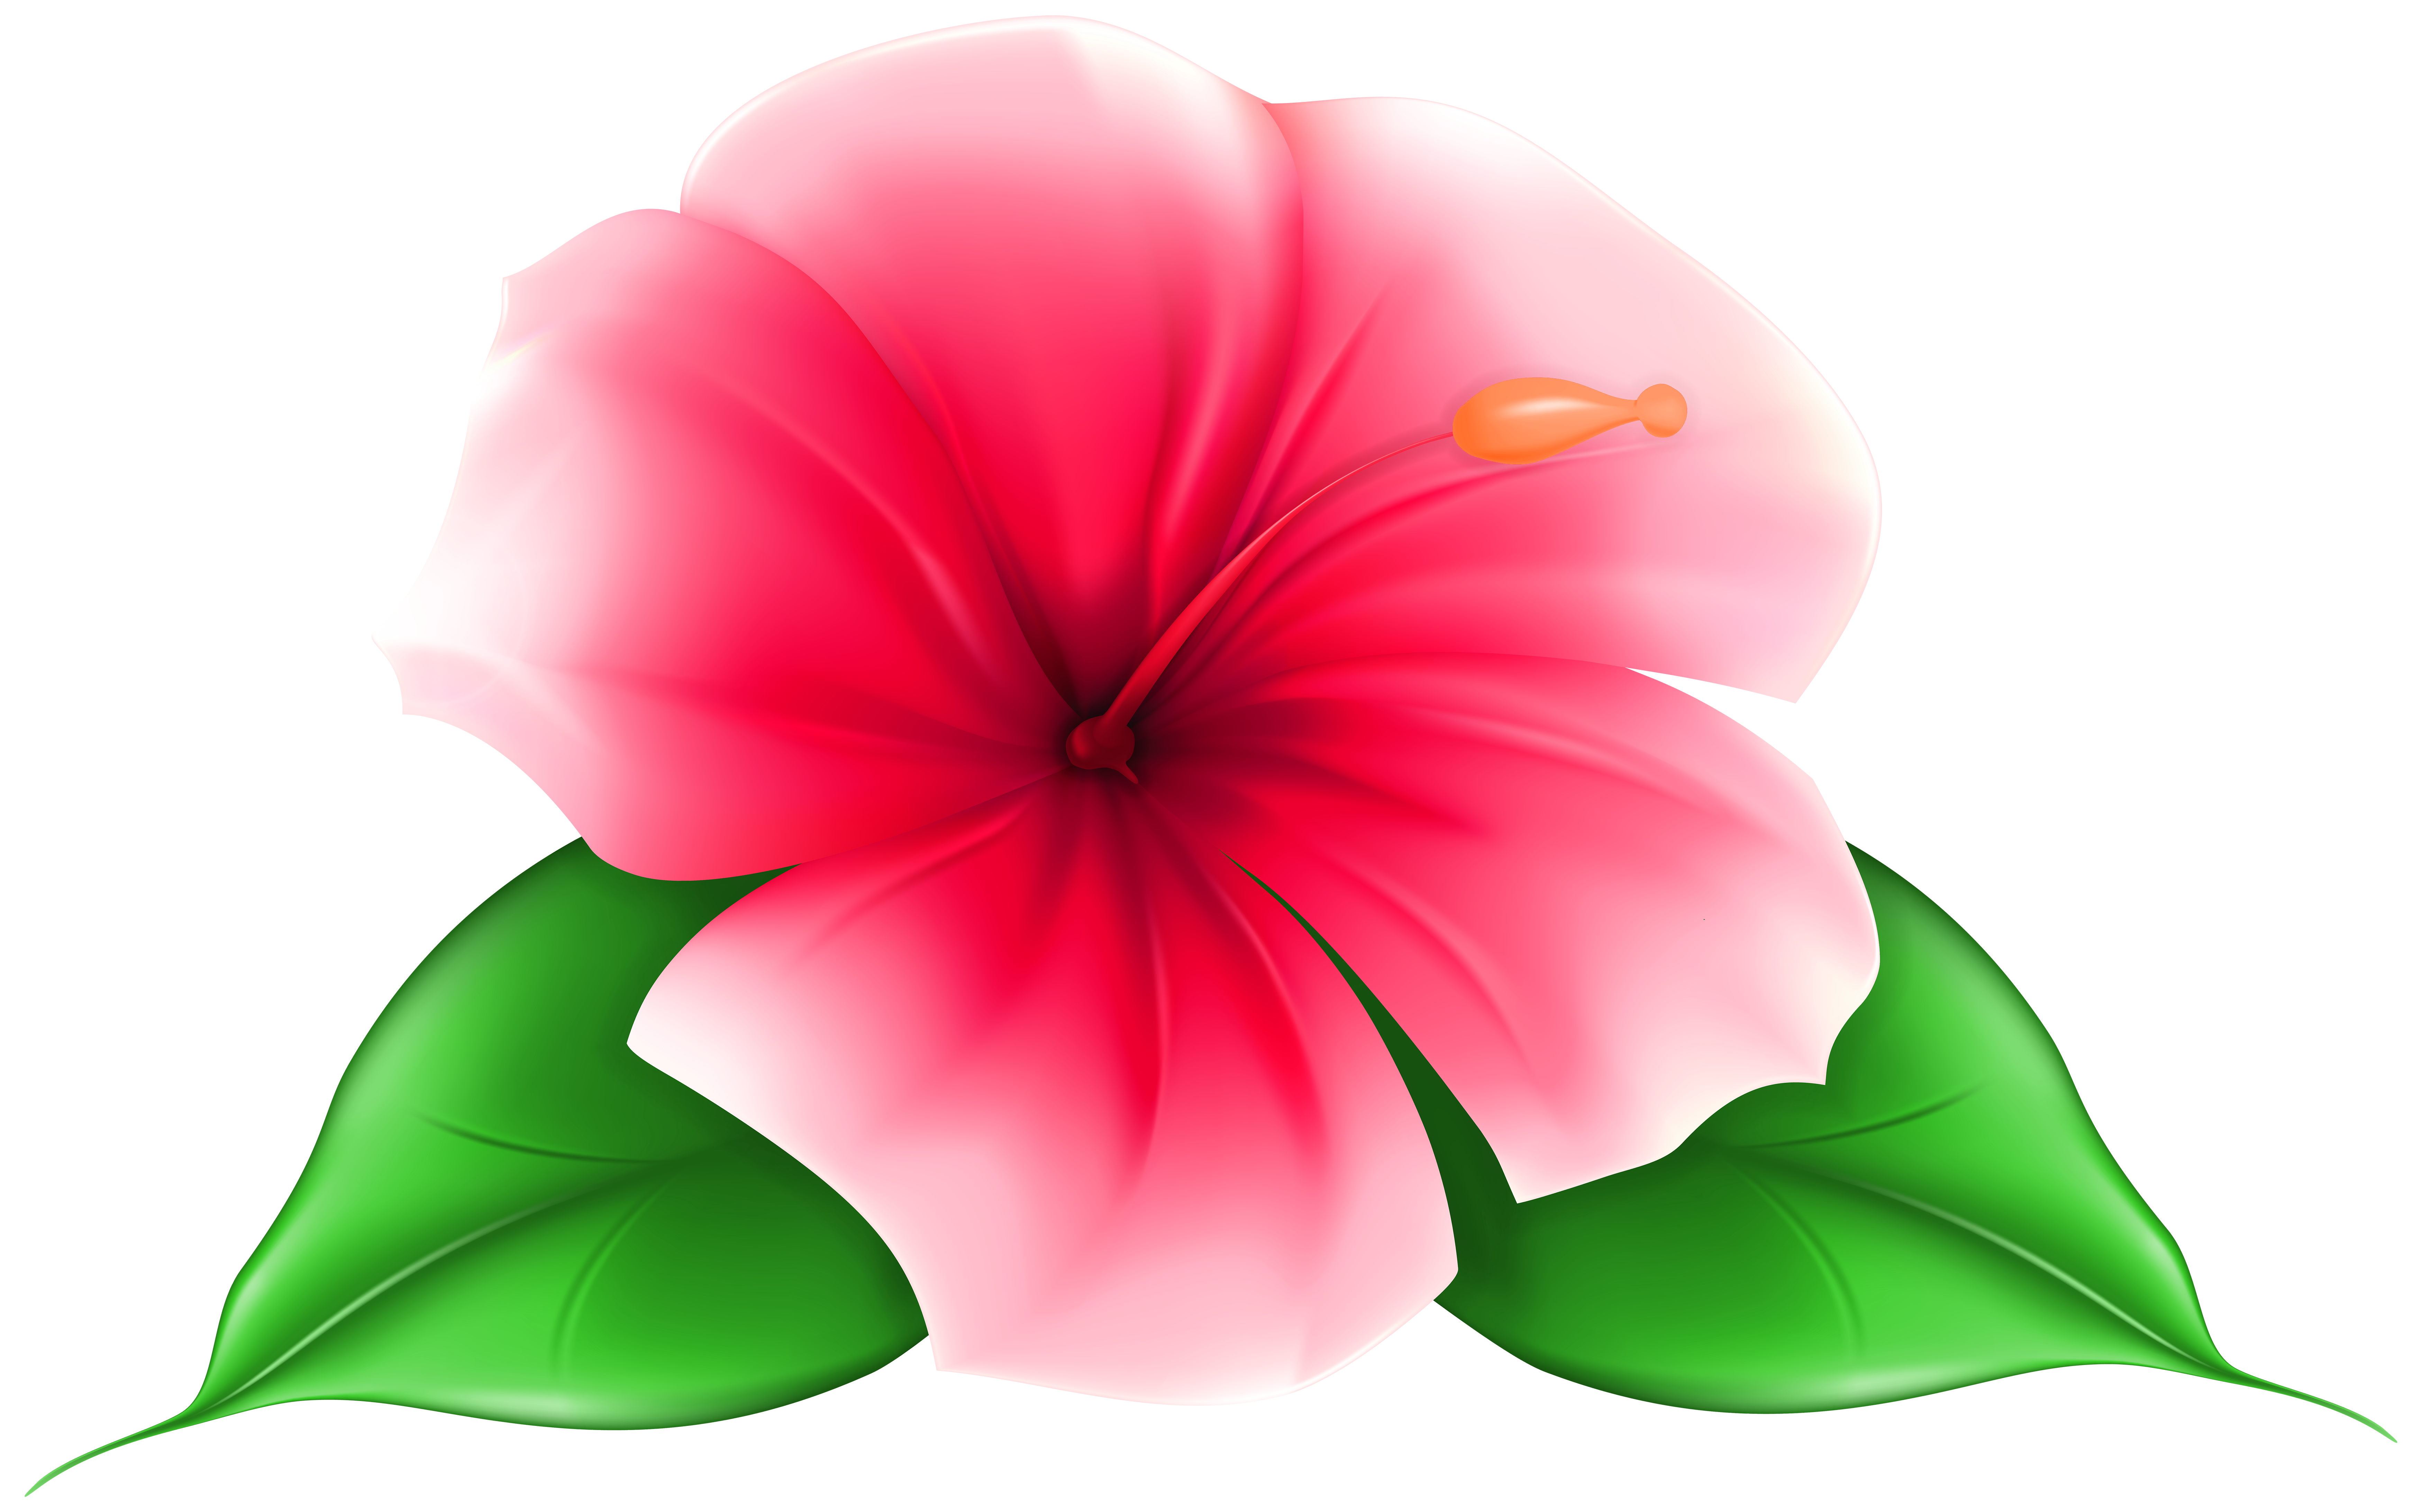 Art at getdrawings com. Flower clipart png